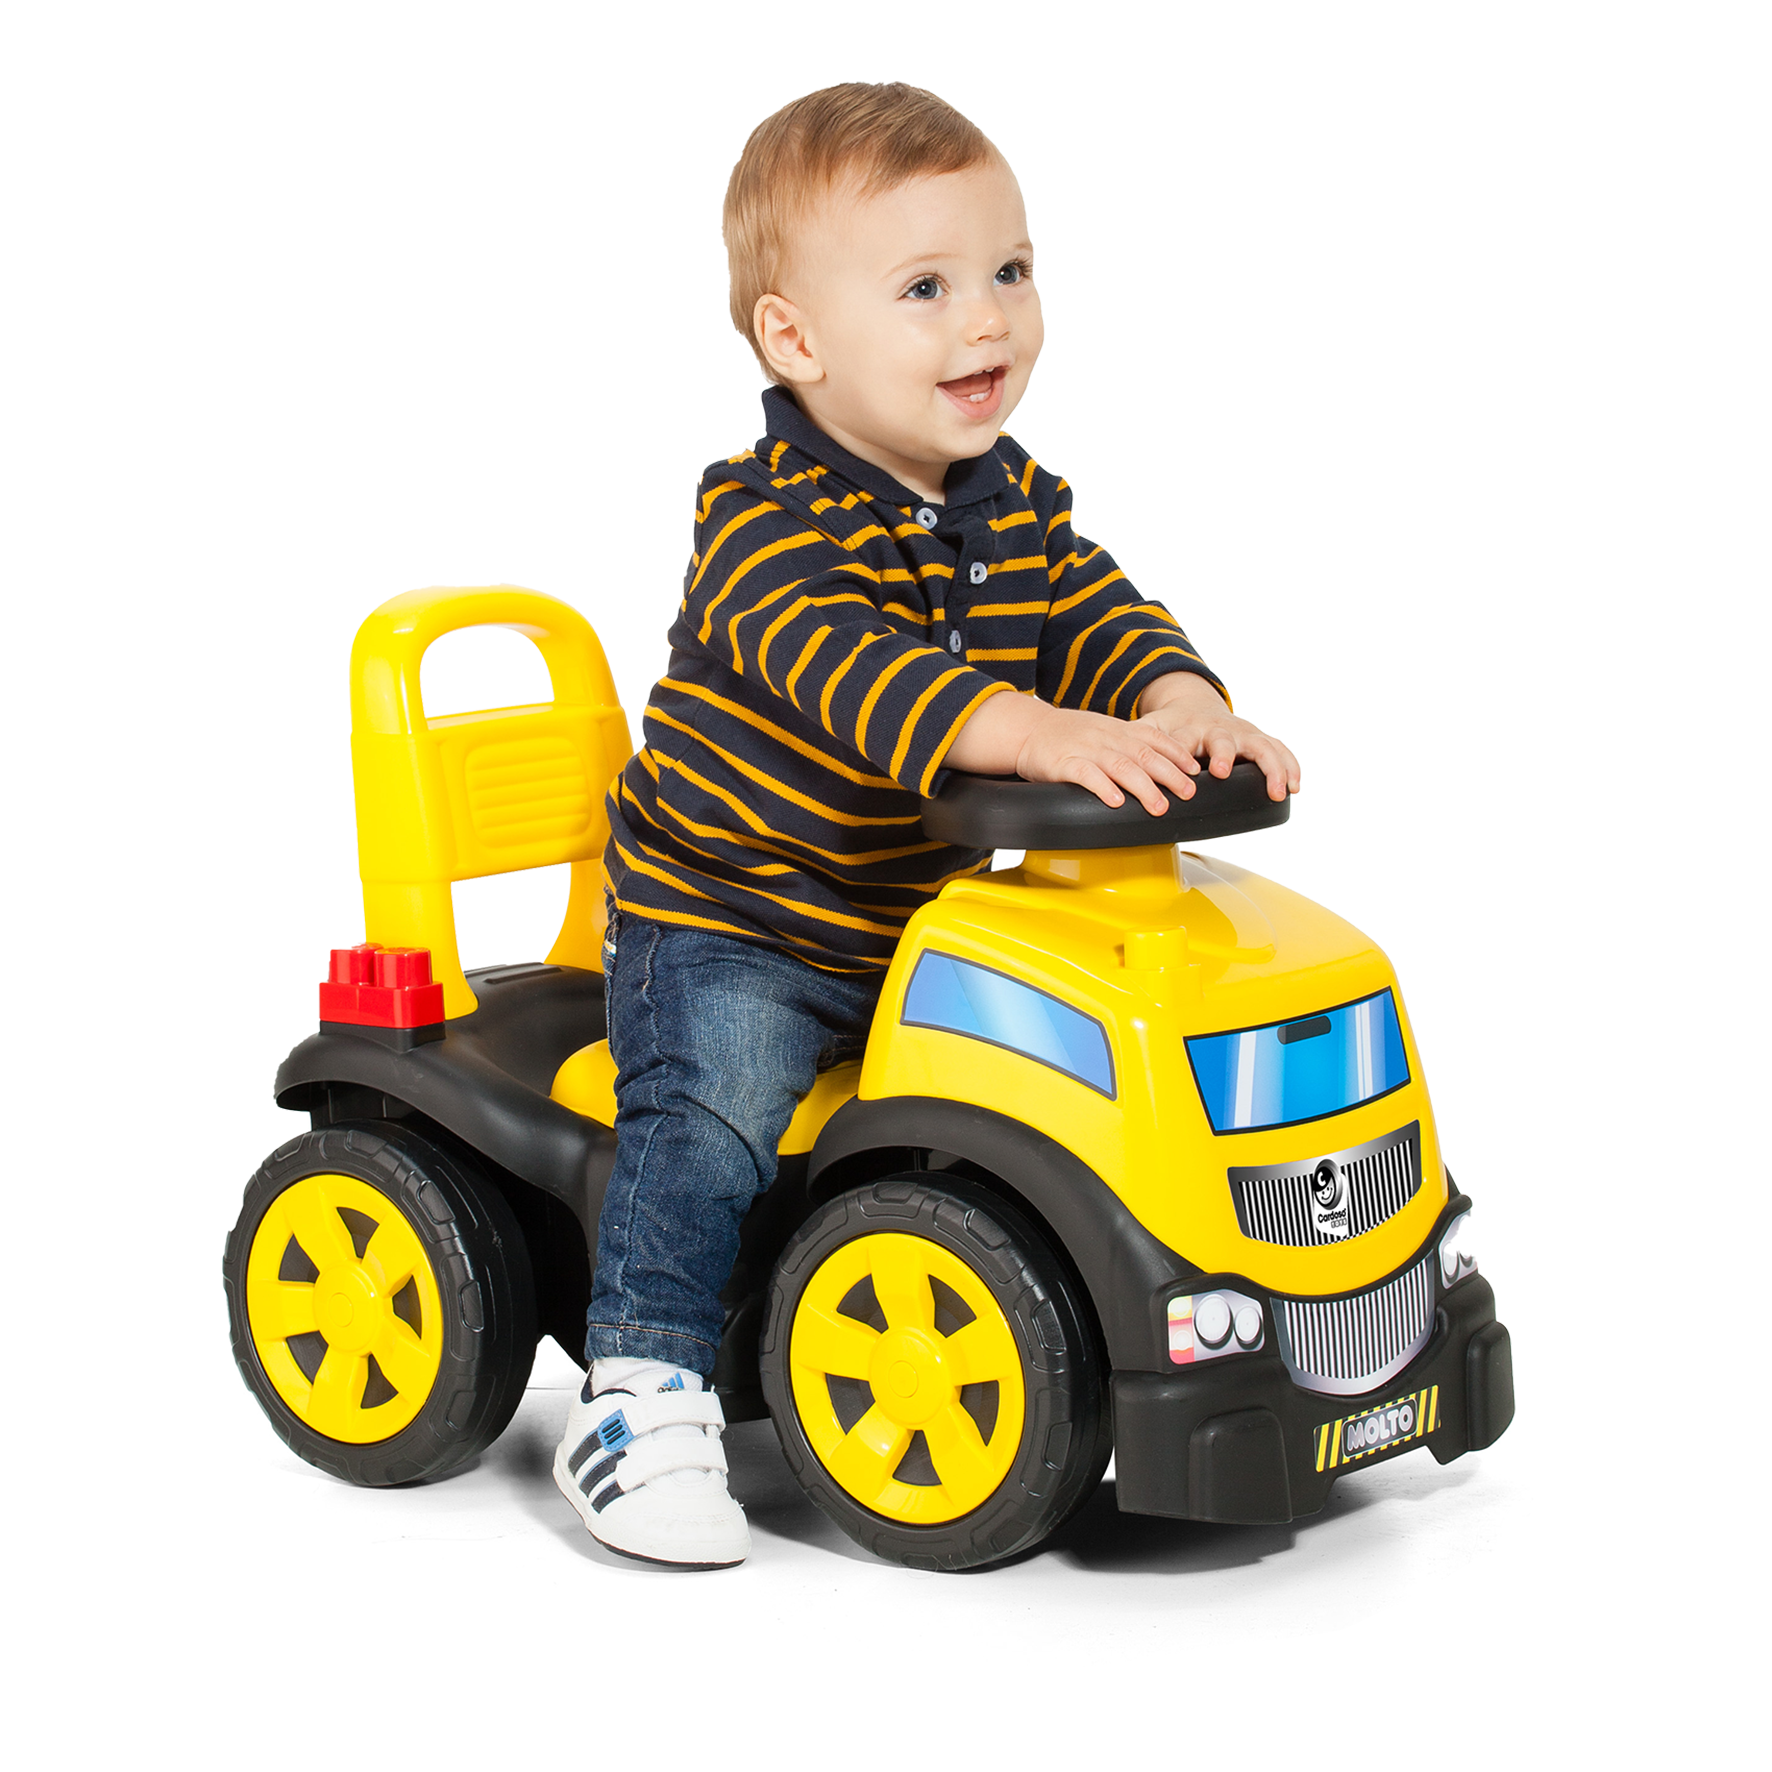 REF.-8014—Baby-Land-Blocks-Truck-Ride-On-menino-MONTADO